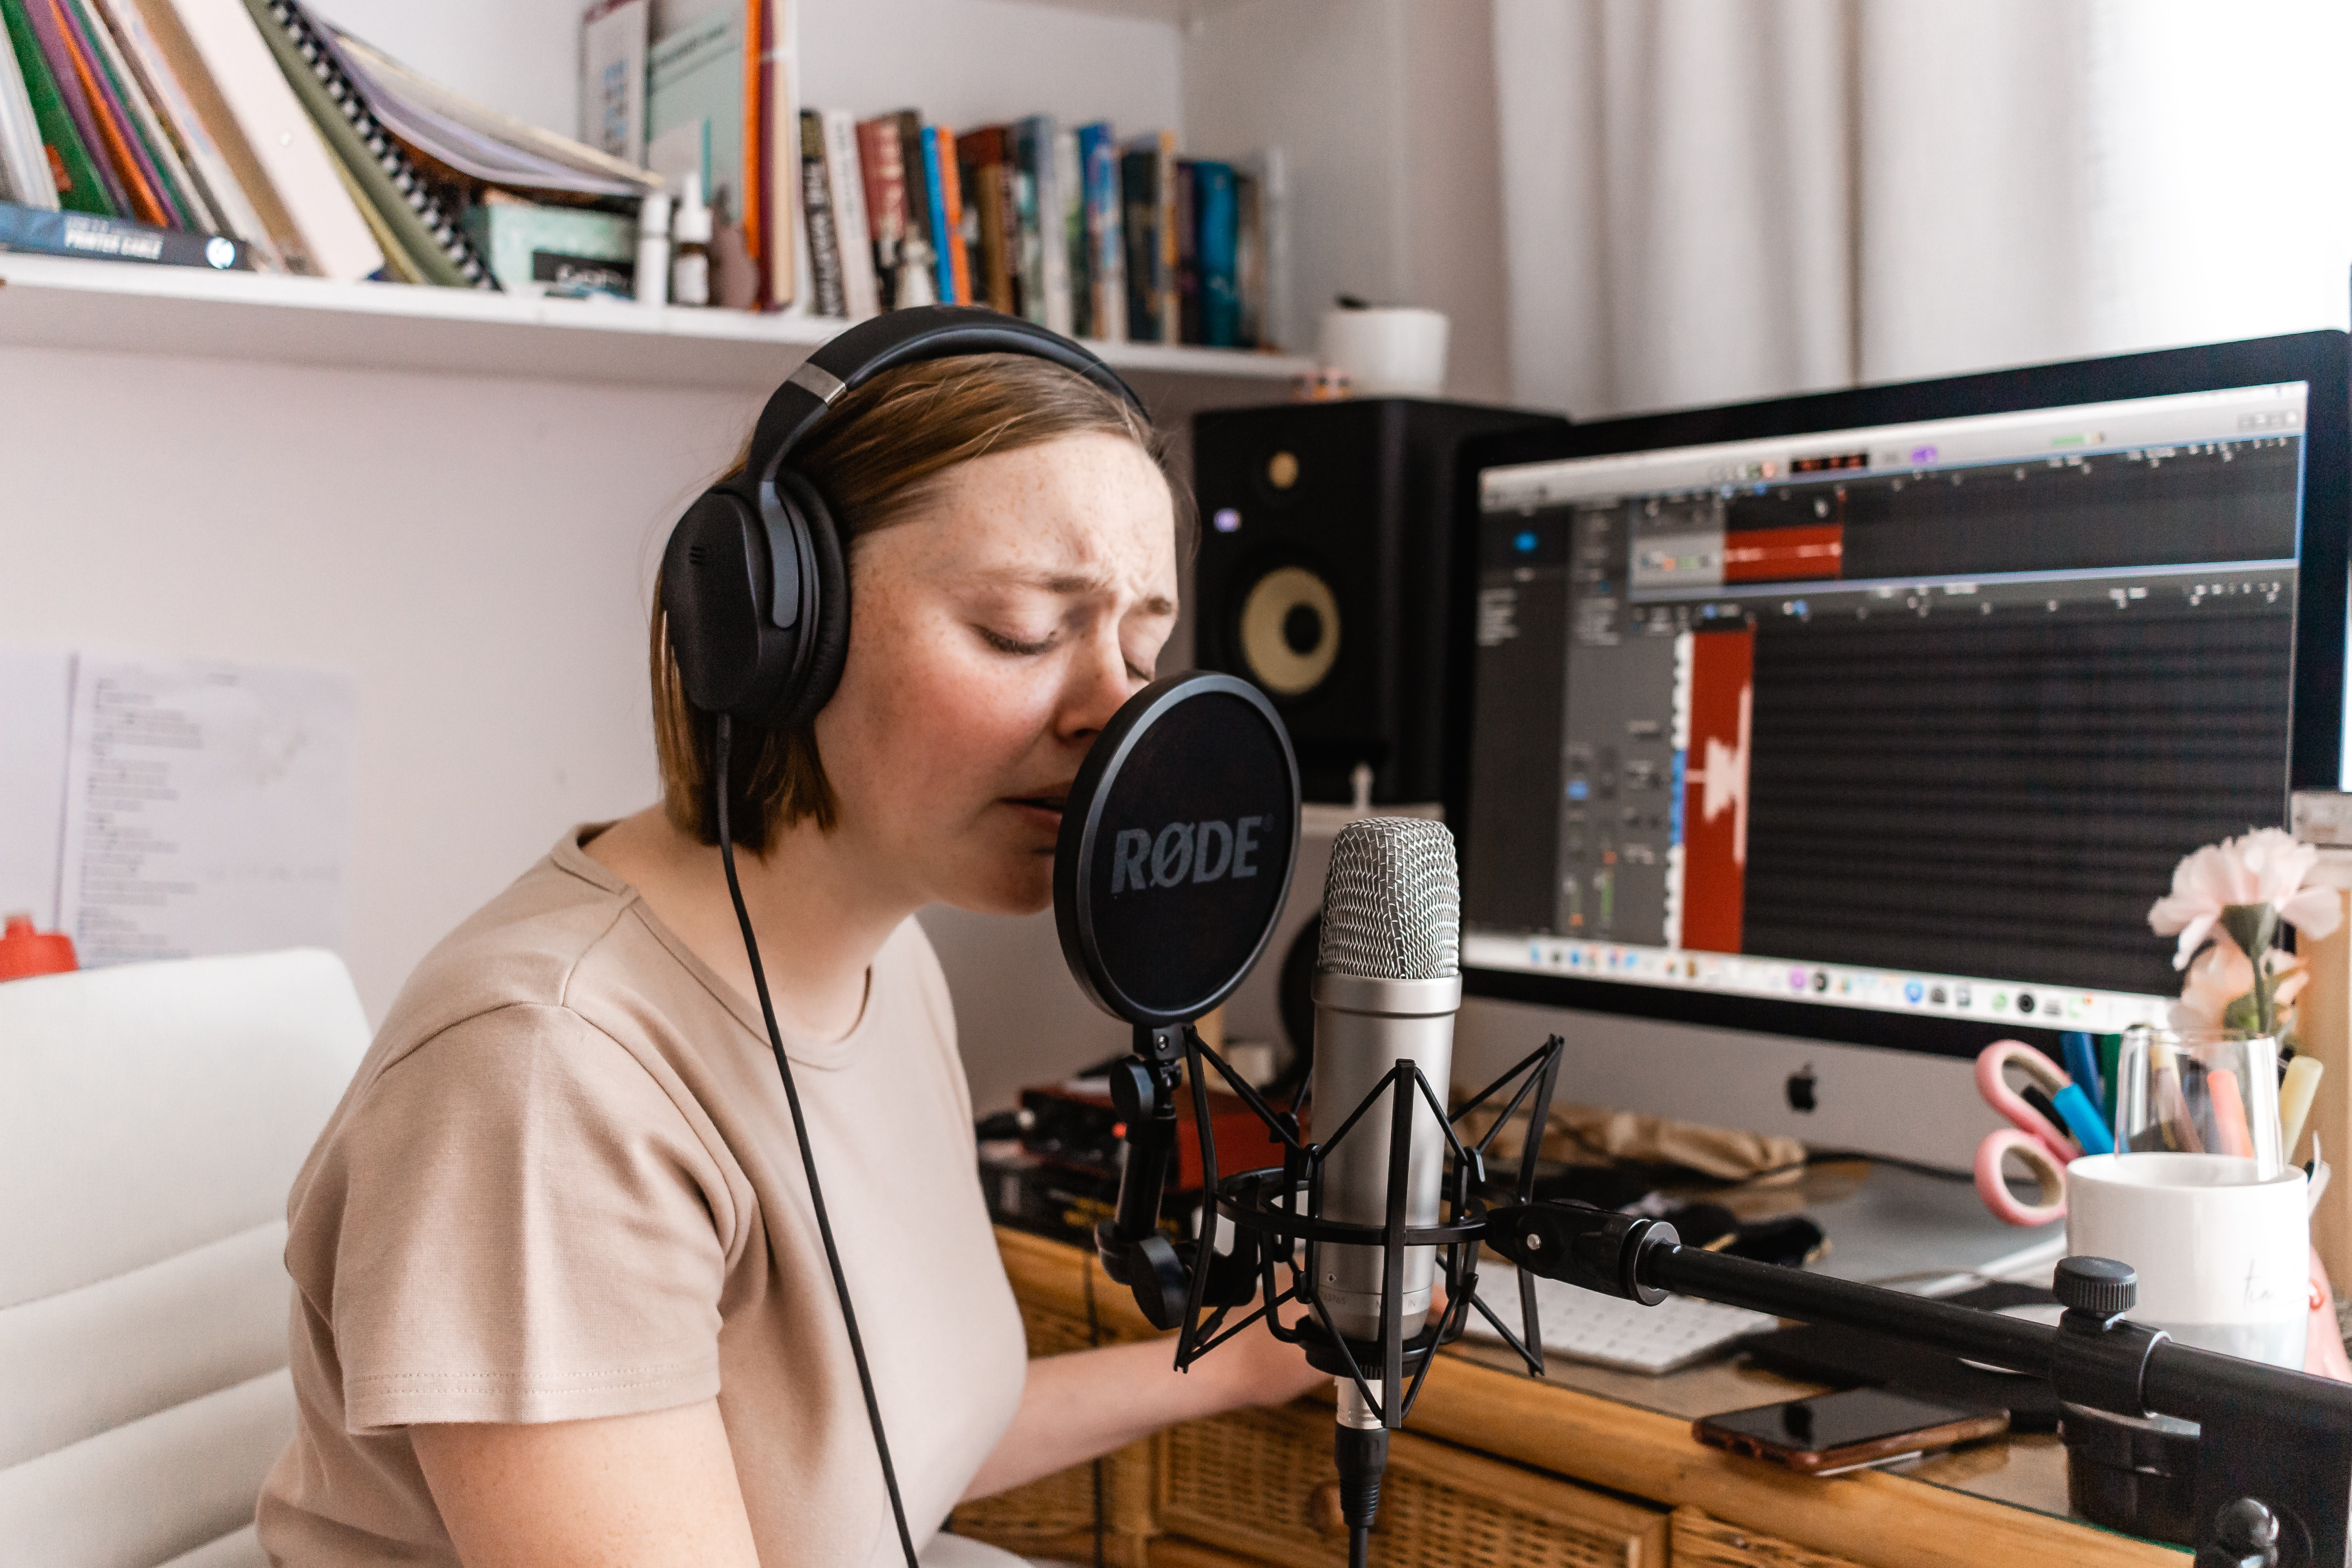 College student recording music in her dorm room